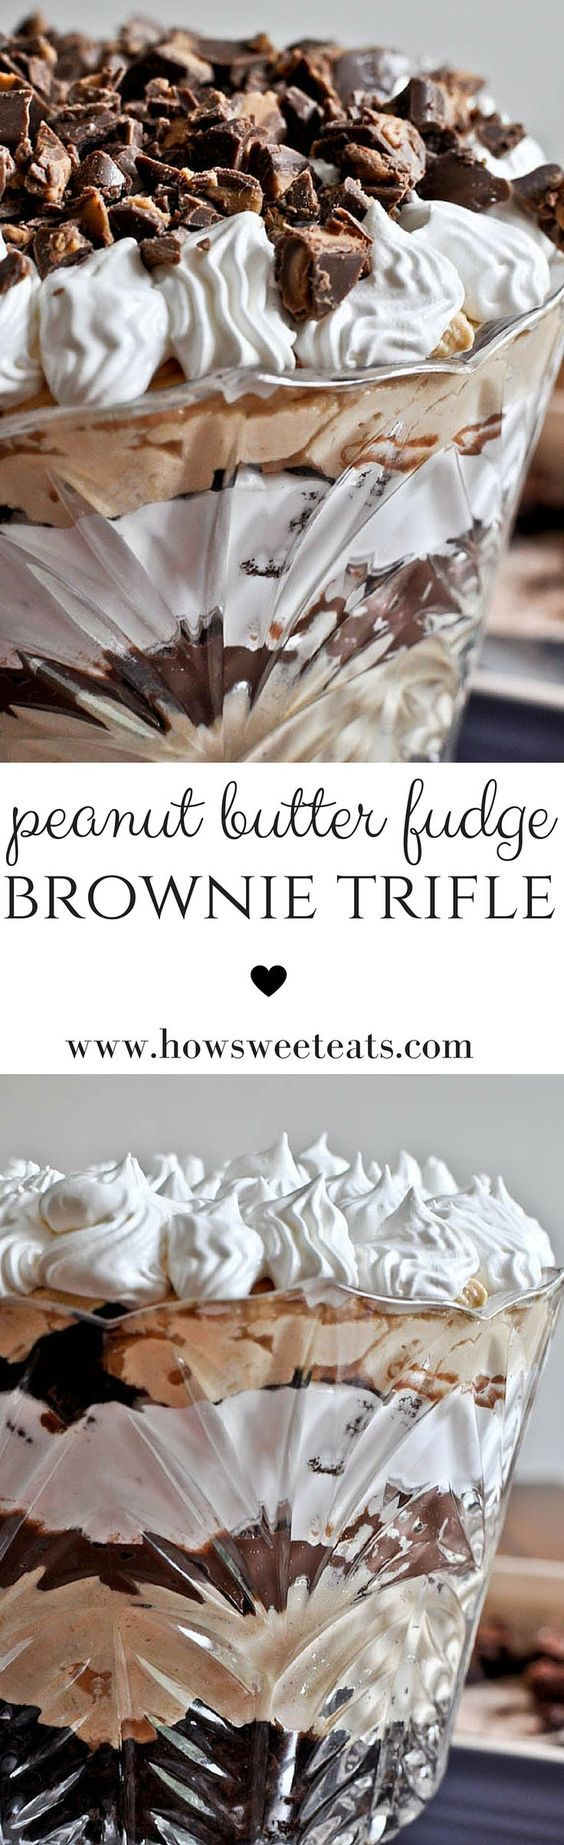 Peanut Butter Fudge Brownie Trifle. An alternative Thanksgiving dessert! I http://howsweeteats.com @howsweeteats